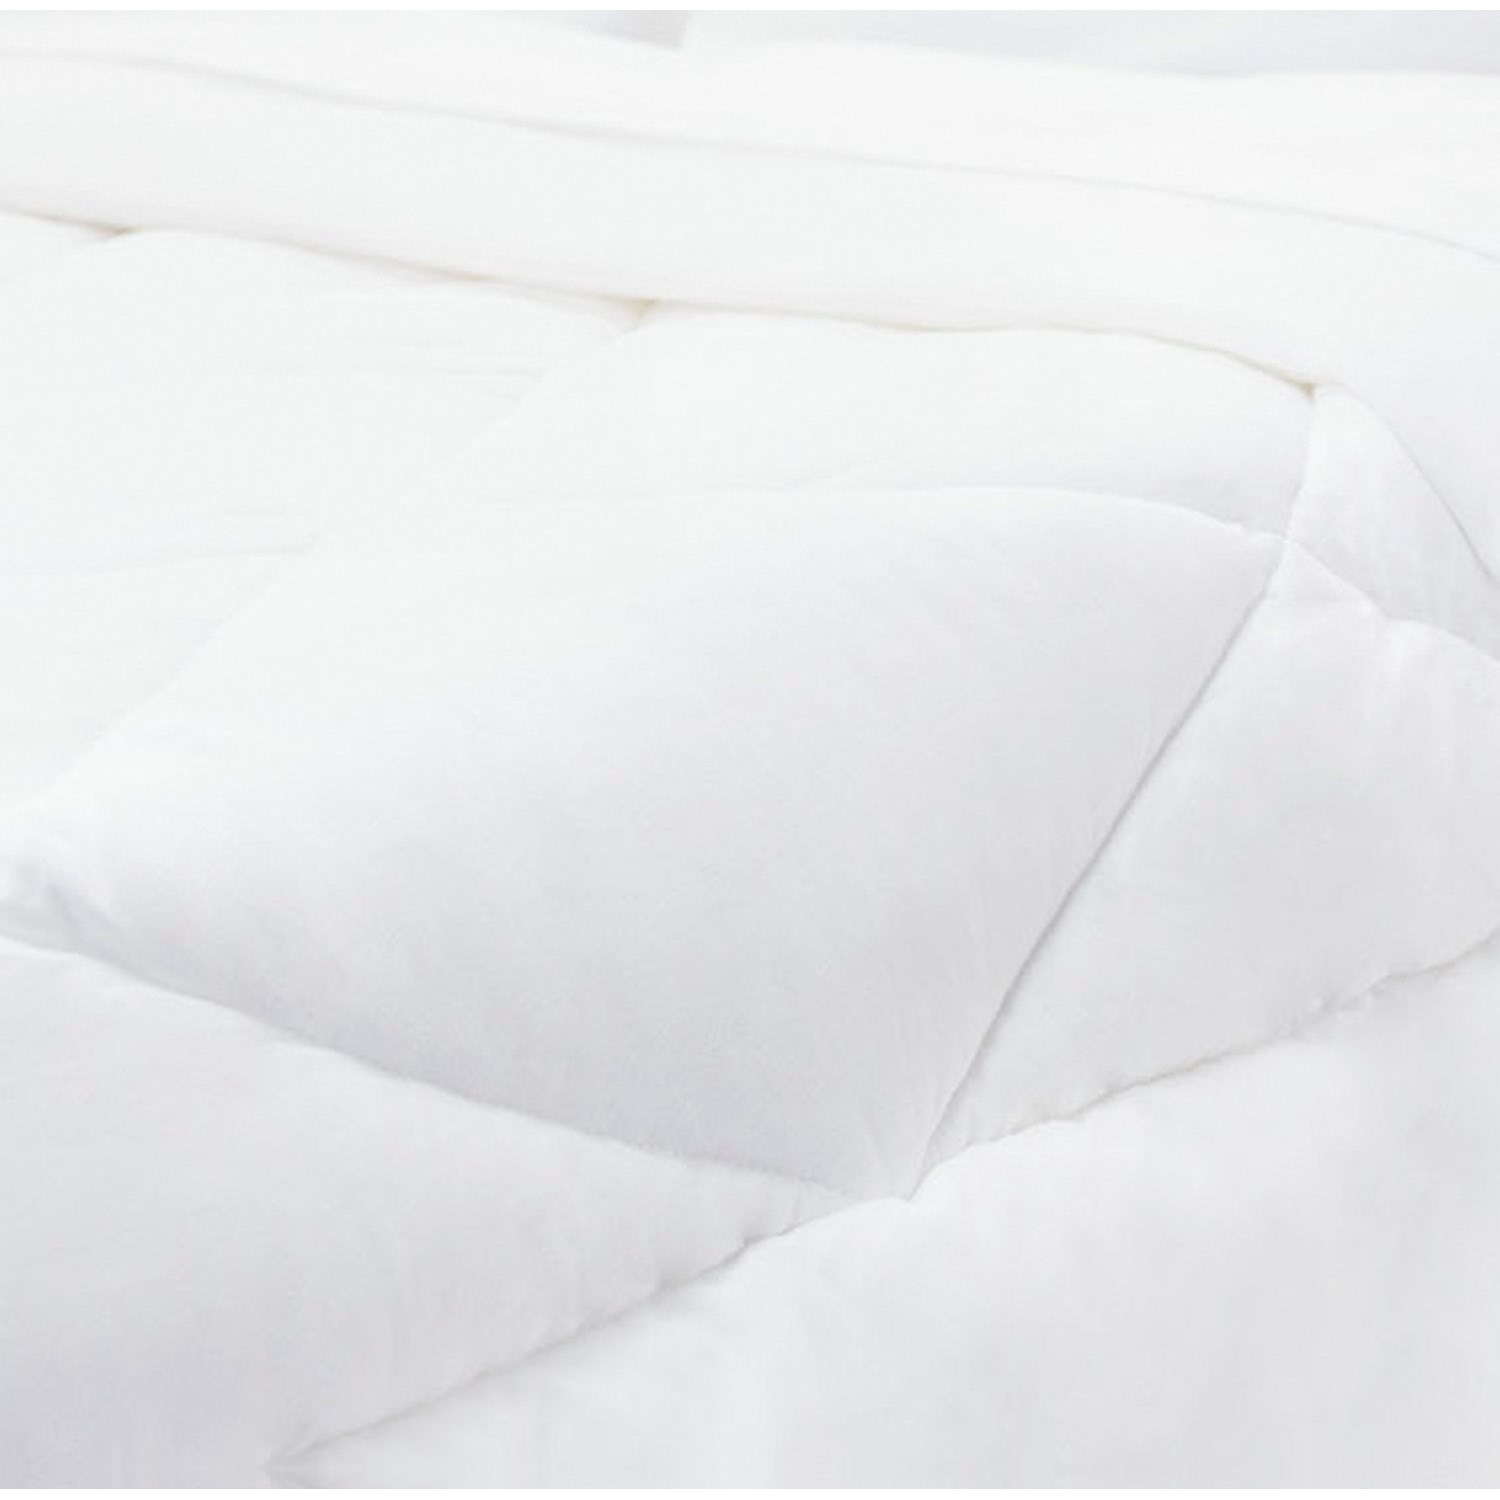 Malouf Down Alternative King Down Alternative Comforter Oversized  - Item Number: MA28KODACO